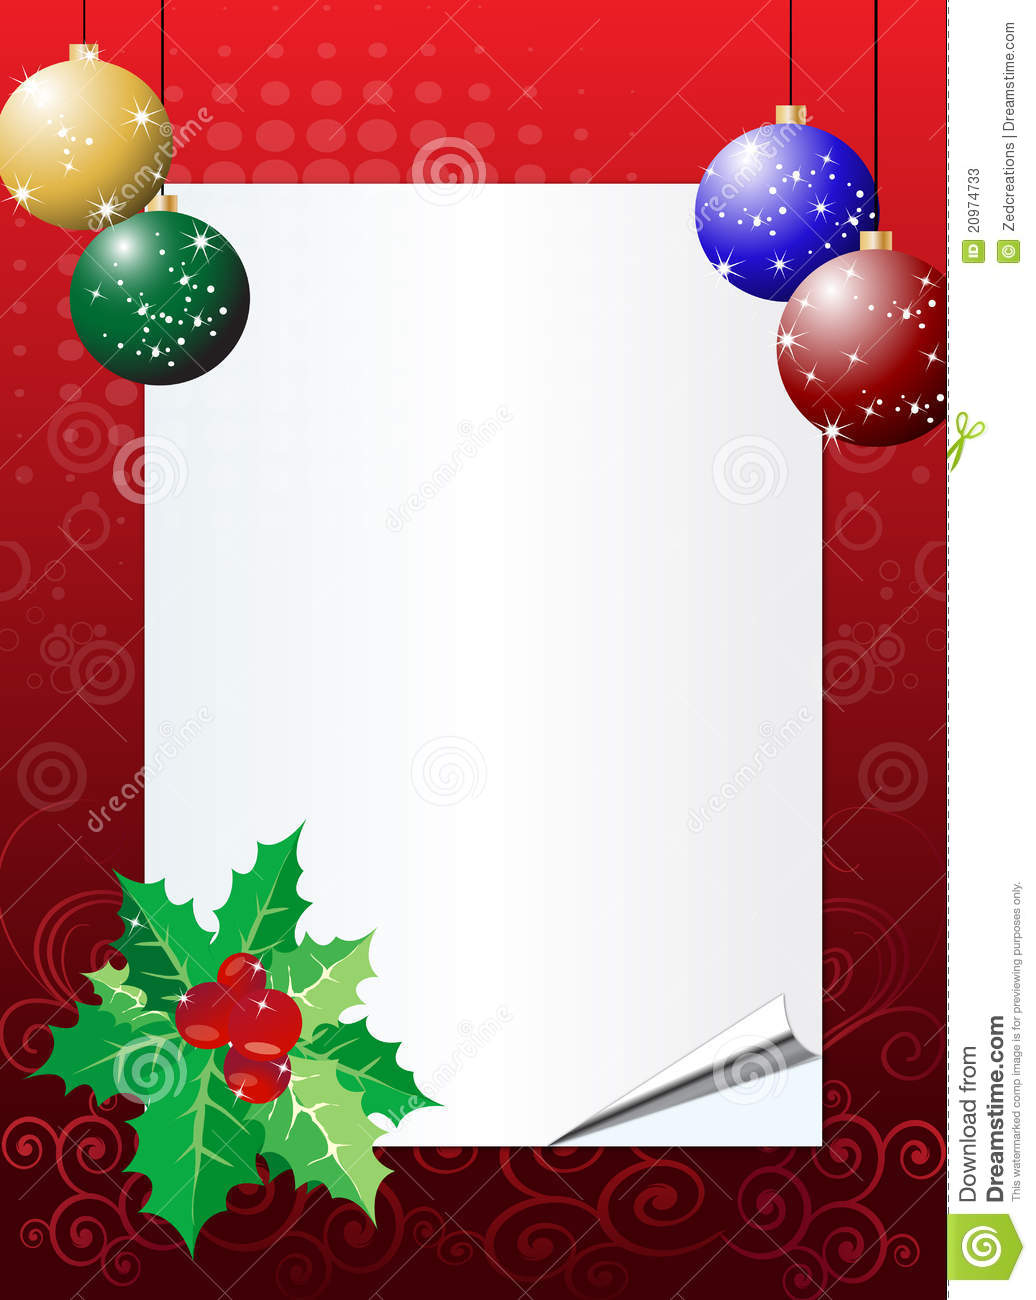 Christmas invitation background stock vector illustration of royalty free stock photo stopboris Image collections